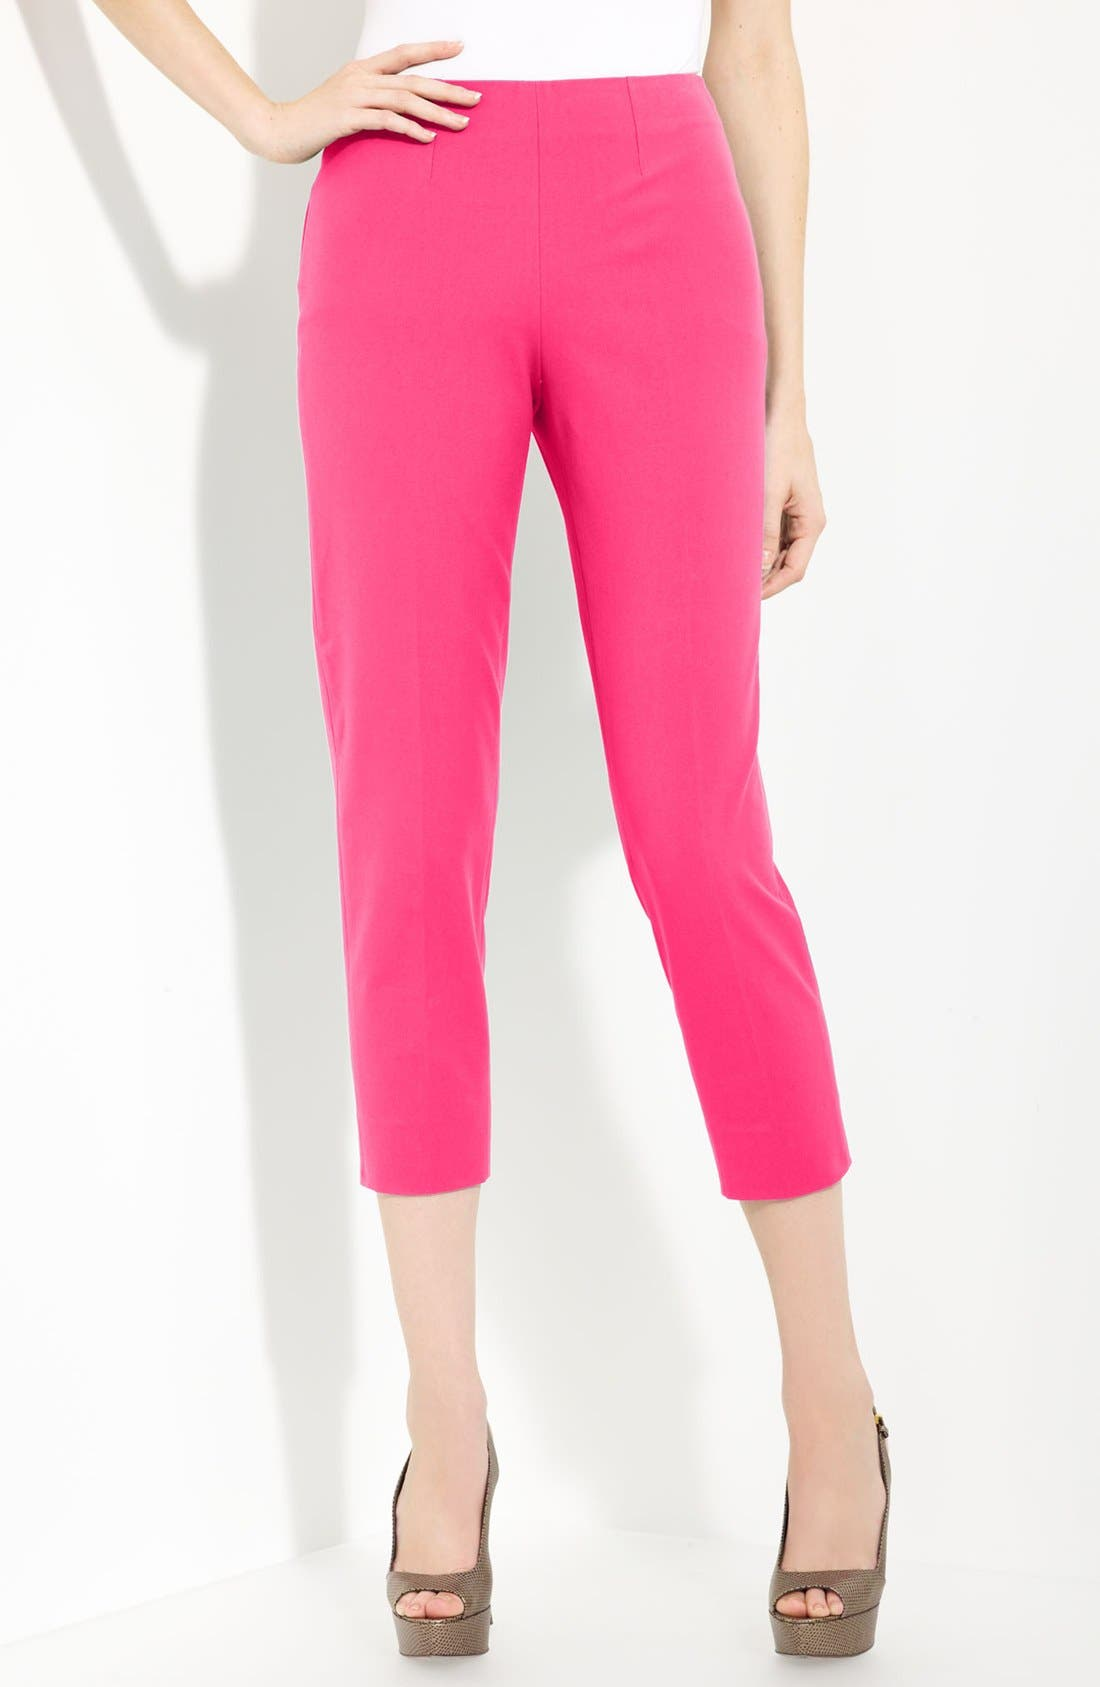 Alternate Image 1 Selected - Piazza Sempione 'Audrey' Stretch Cotton Gabardine Capris